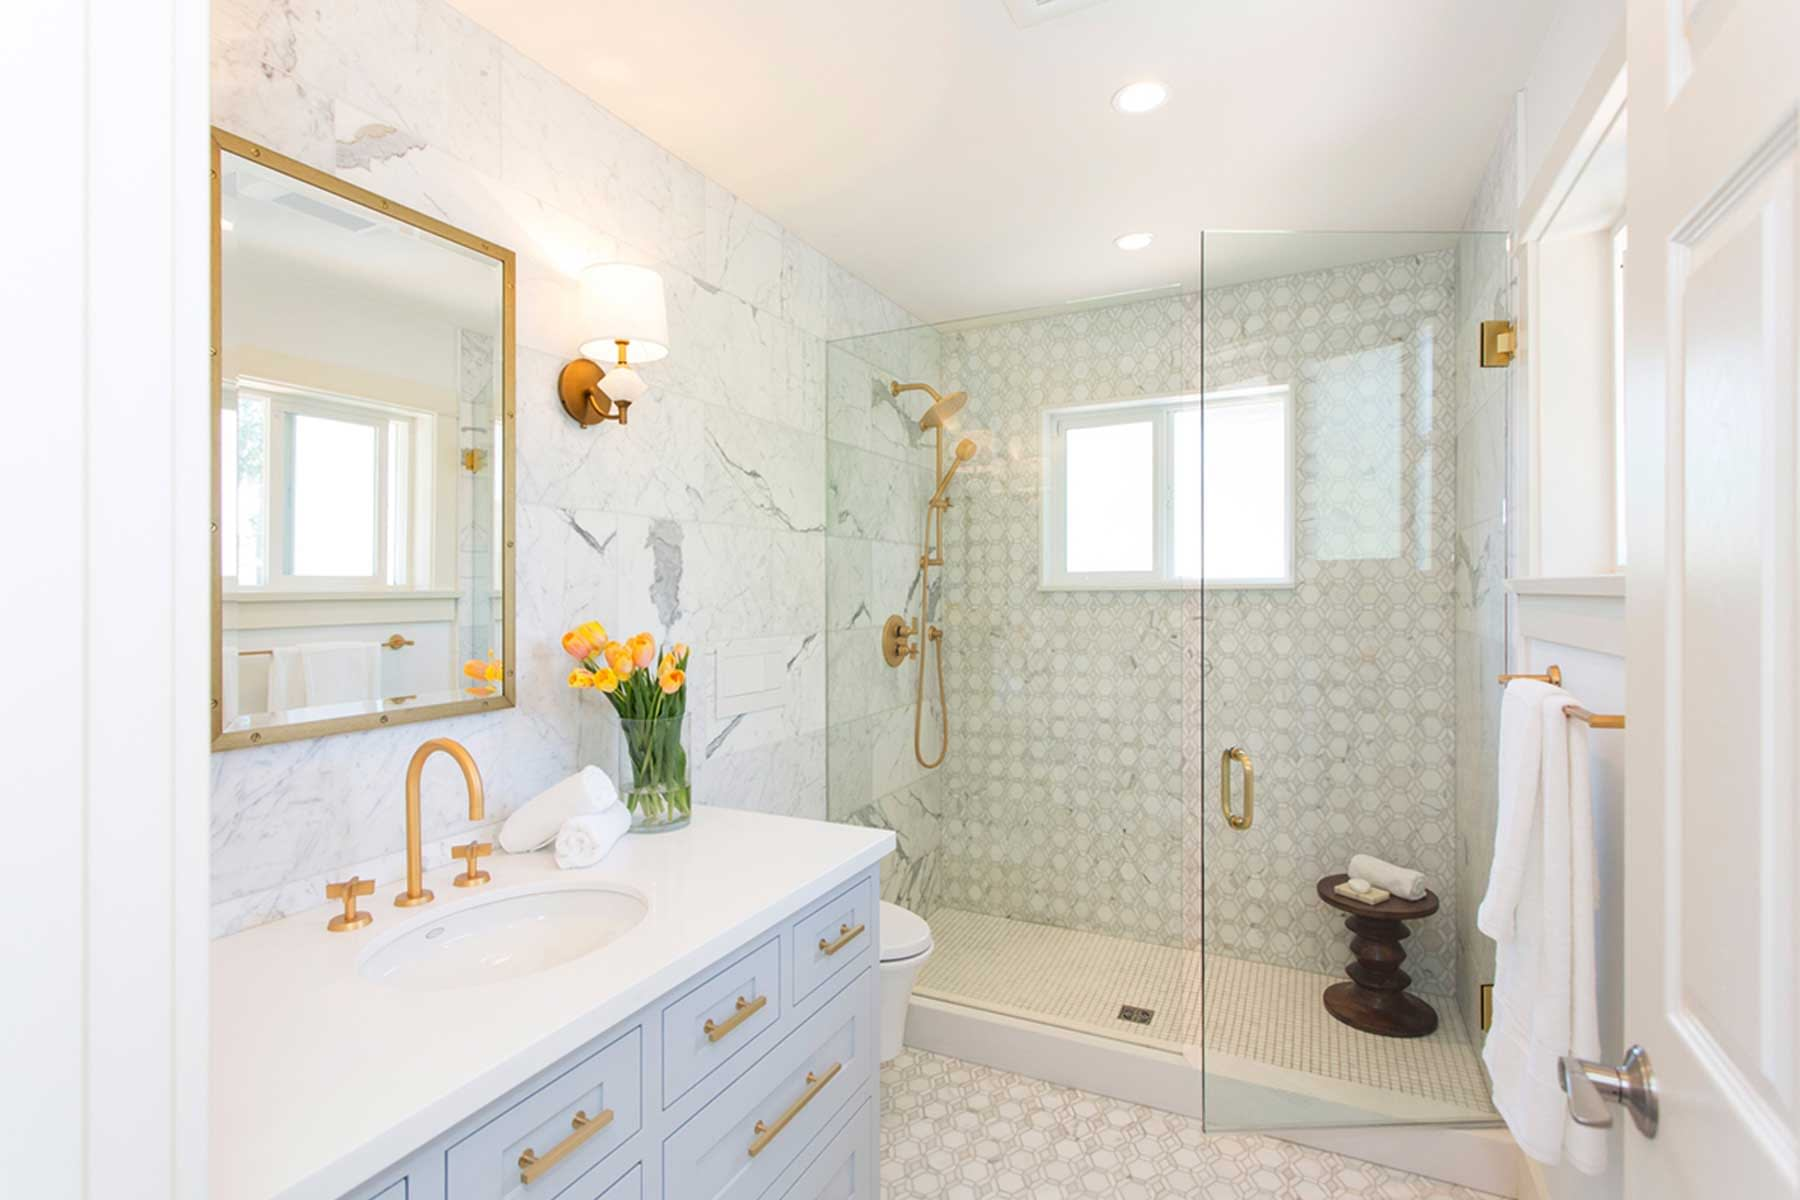 Bathrooms Renovation North Vancouver | Best Local Construction